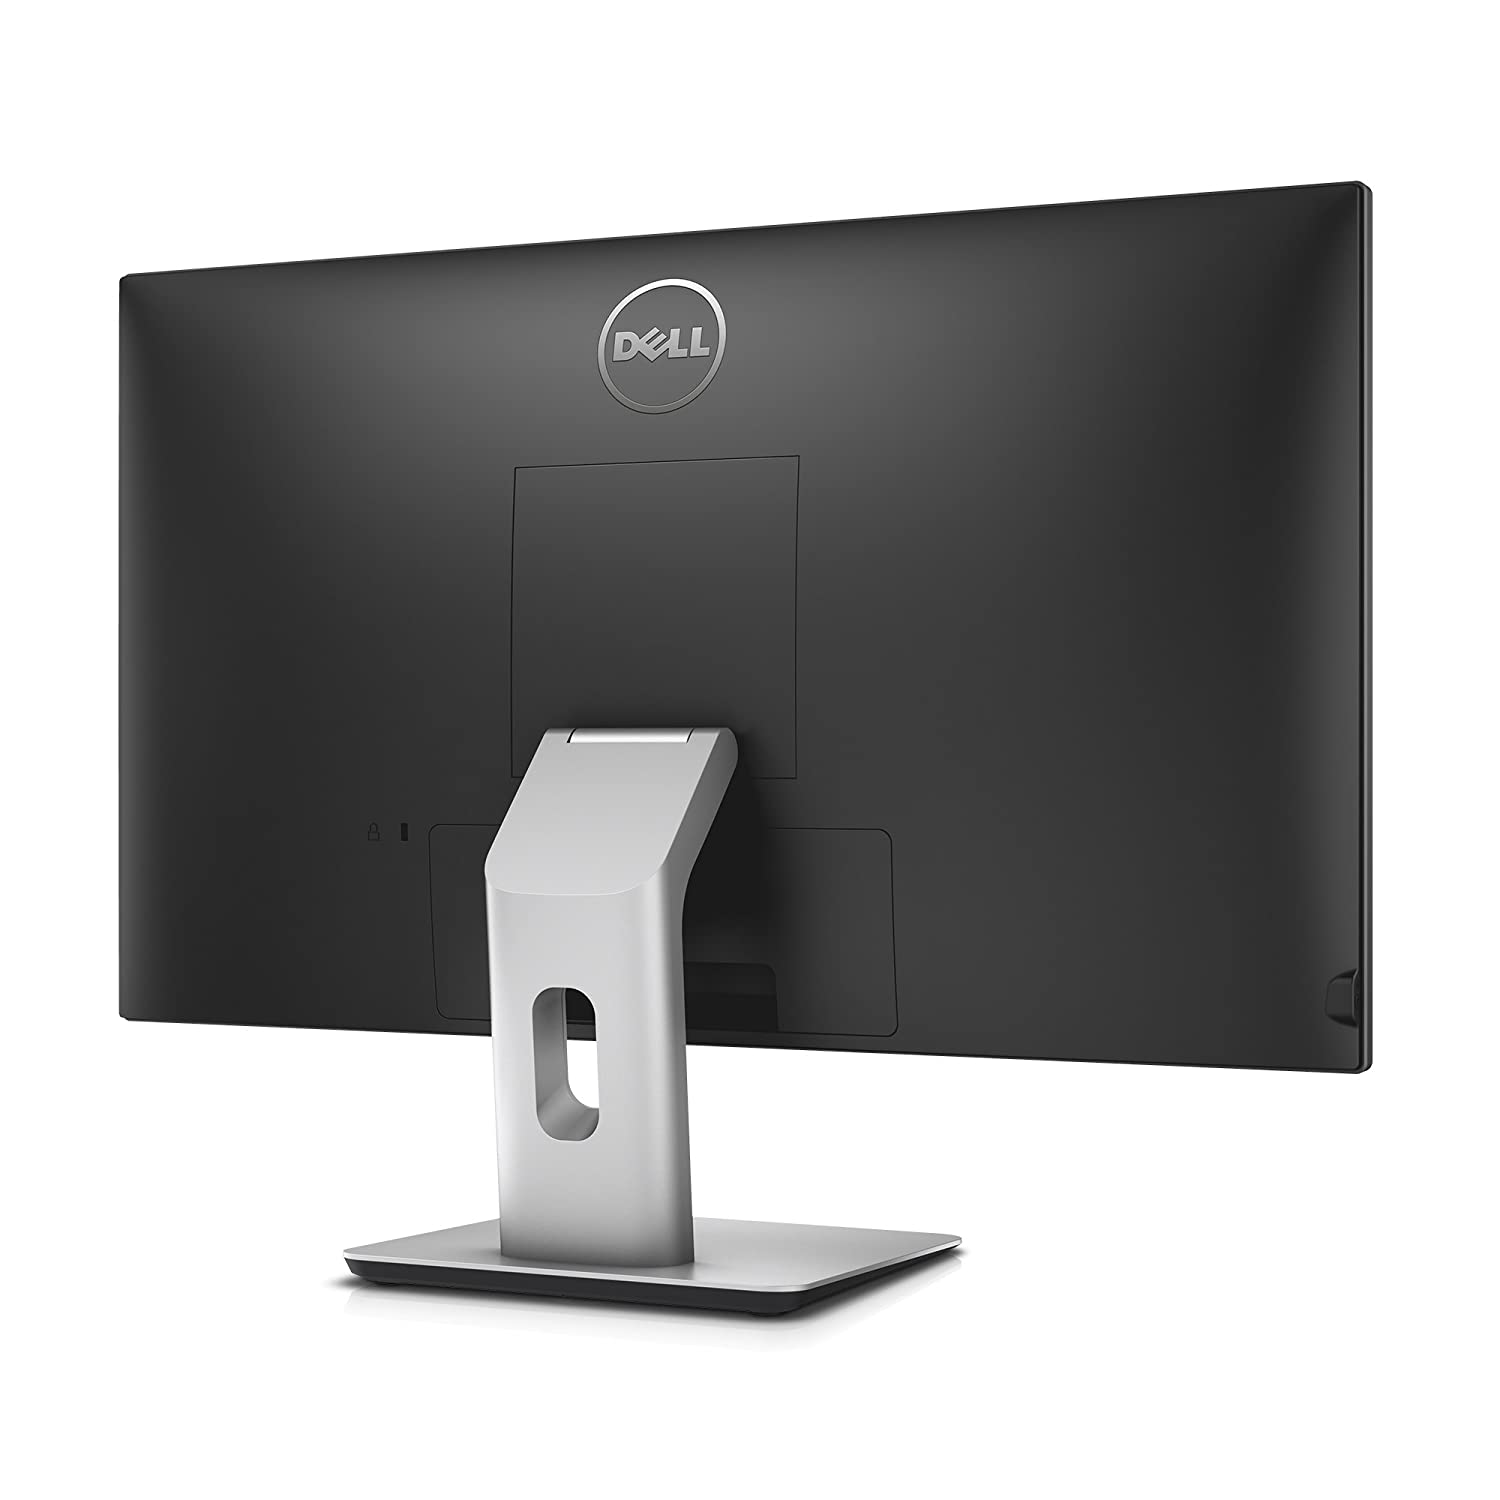 Amazon Dell S2415H 24 Inch Screen LED Lit Monitor puters & Accessories